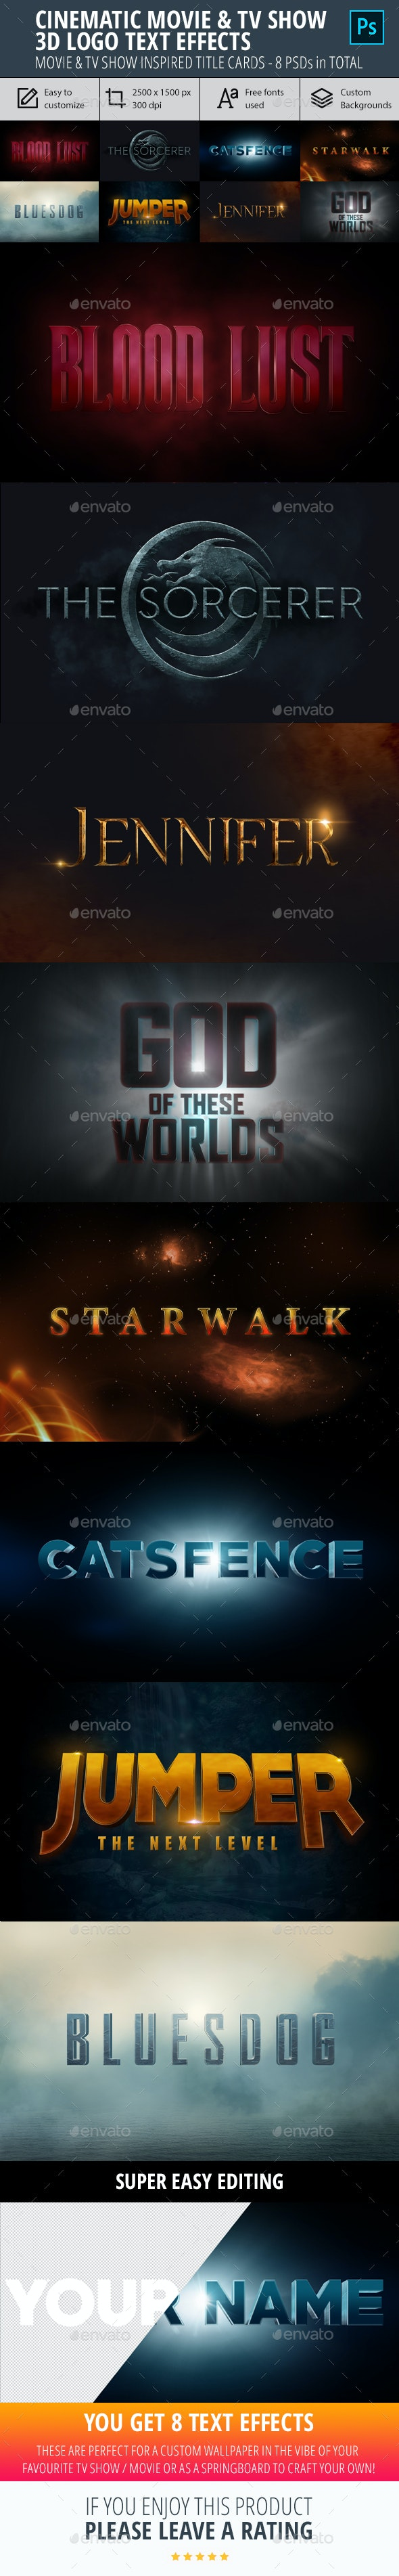 Cinematic Movie & TV Show Logo 3D Text Effect - Graphics